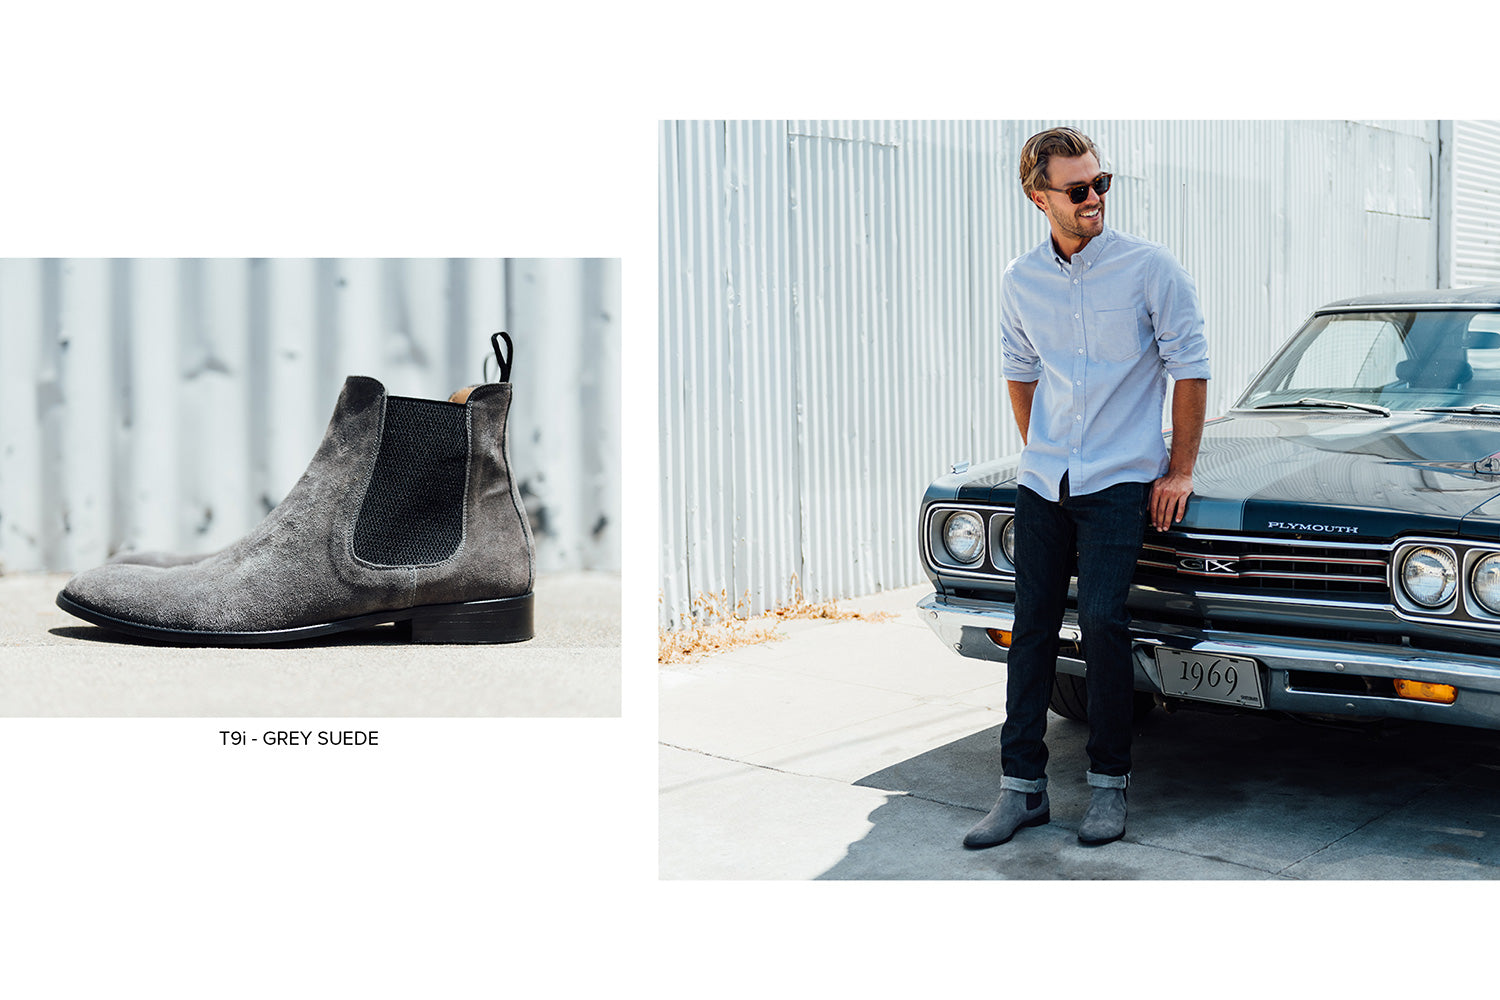 T9i Chelsea Boot in Grey Suede by Blake McKay